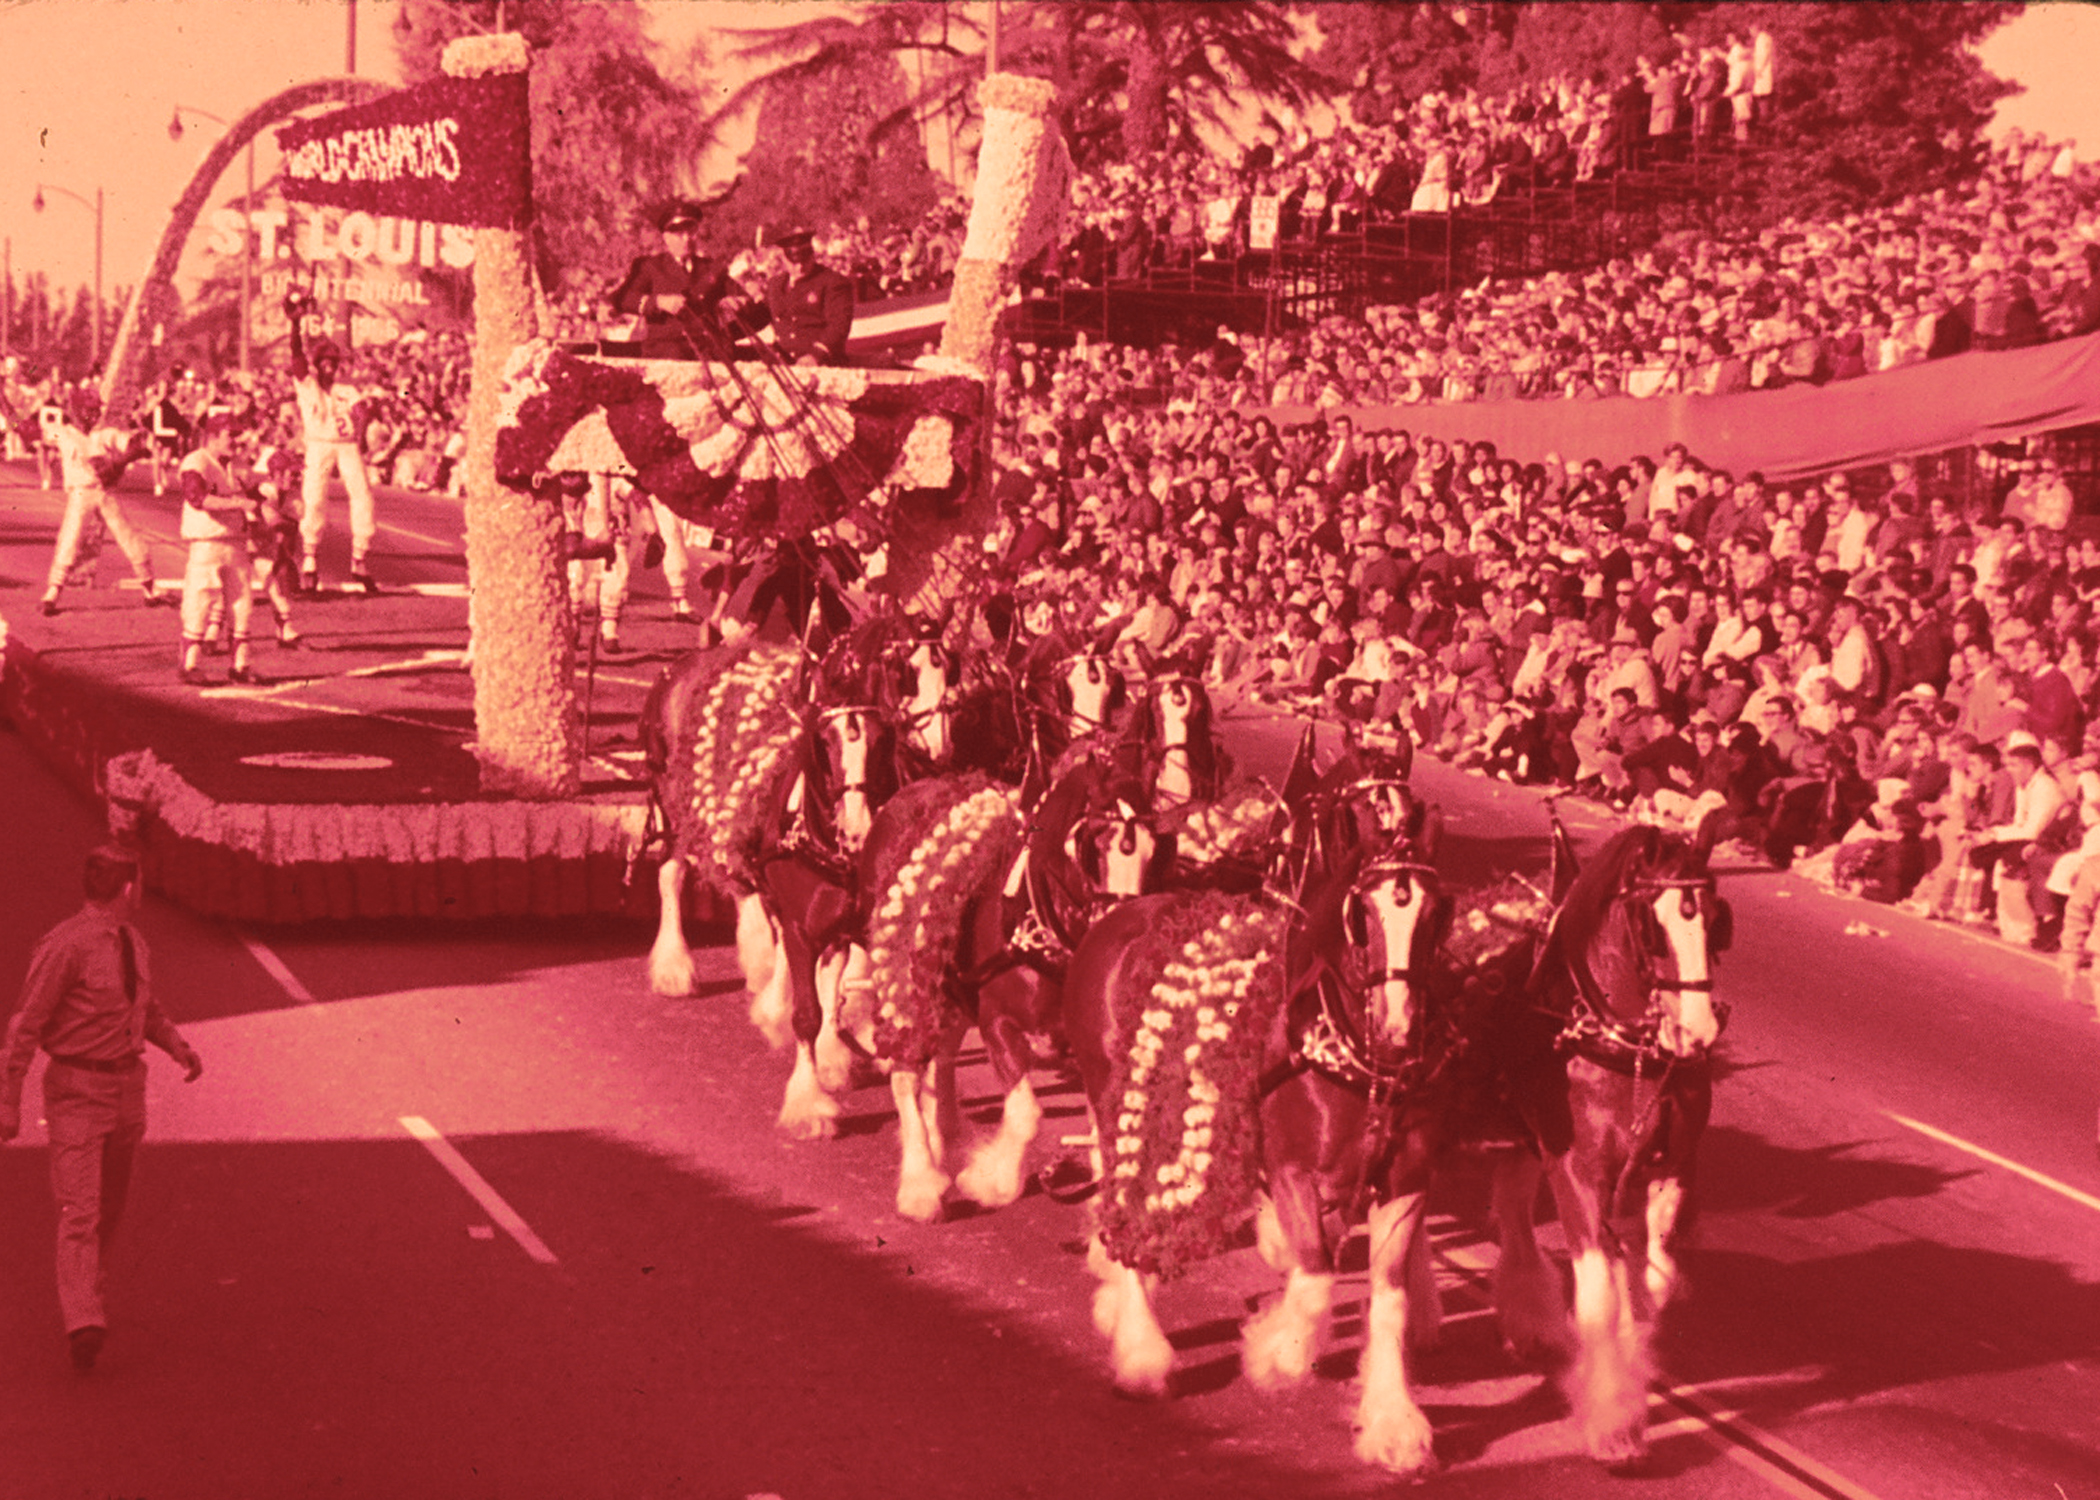 The St. Louis float in the 1965 Tournament of Roses Parade. This impressive float featured the Budweiser Clydesdales, the Arch and St. Louis Cardinals baseball players.